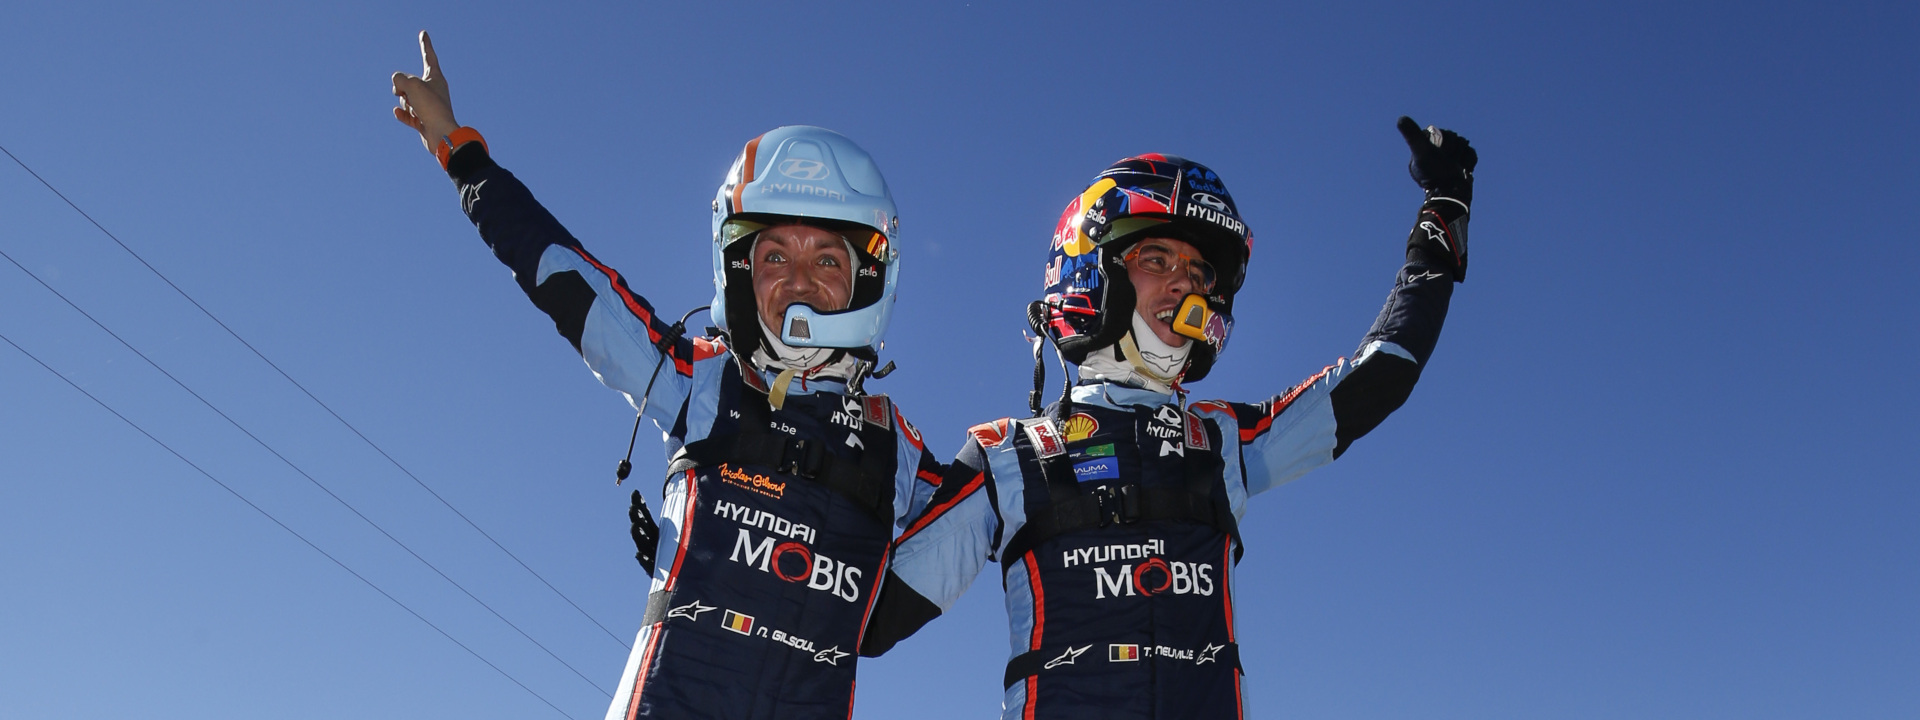 Hyundai Motor Sport with double win at Rallye Argentina